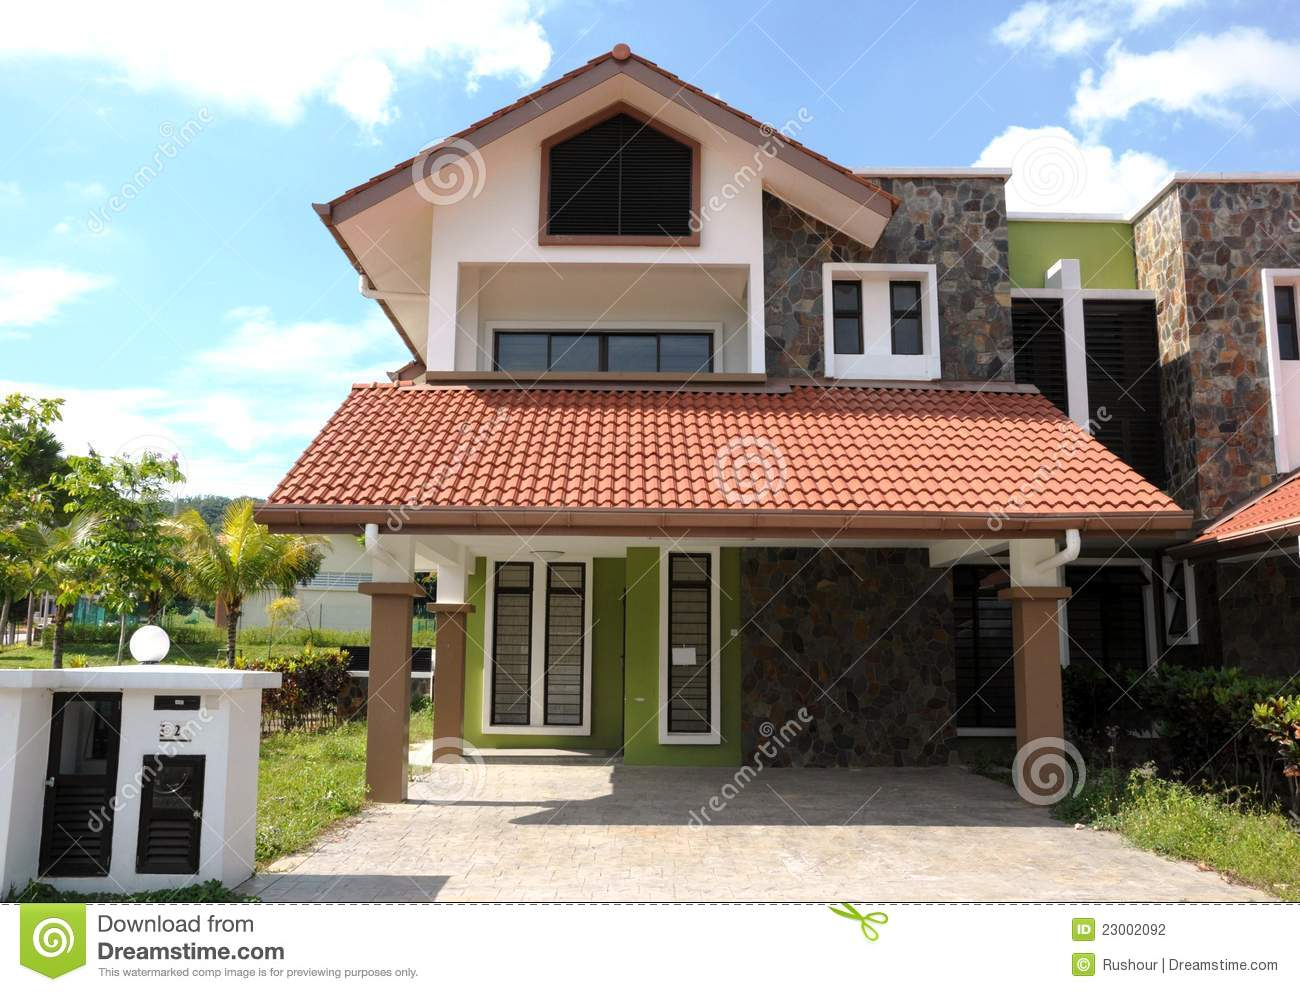 Semi Detached House Stock Photo Image Of Cloud House 23002092